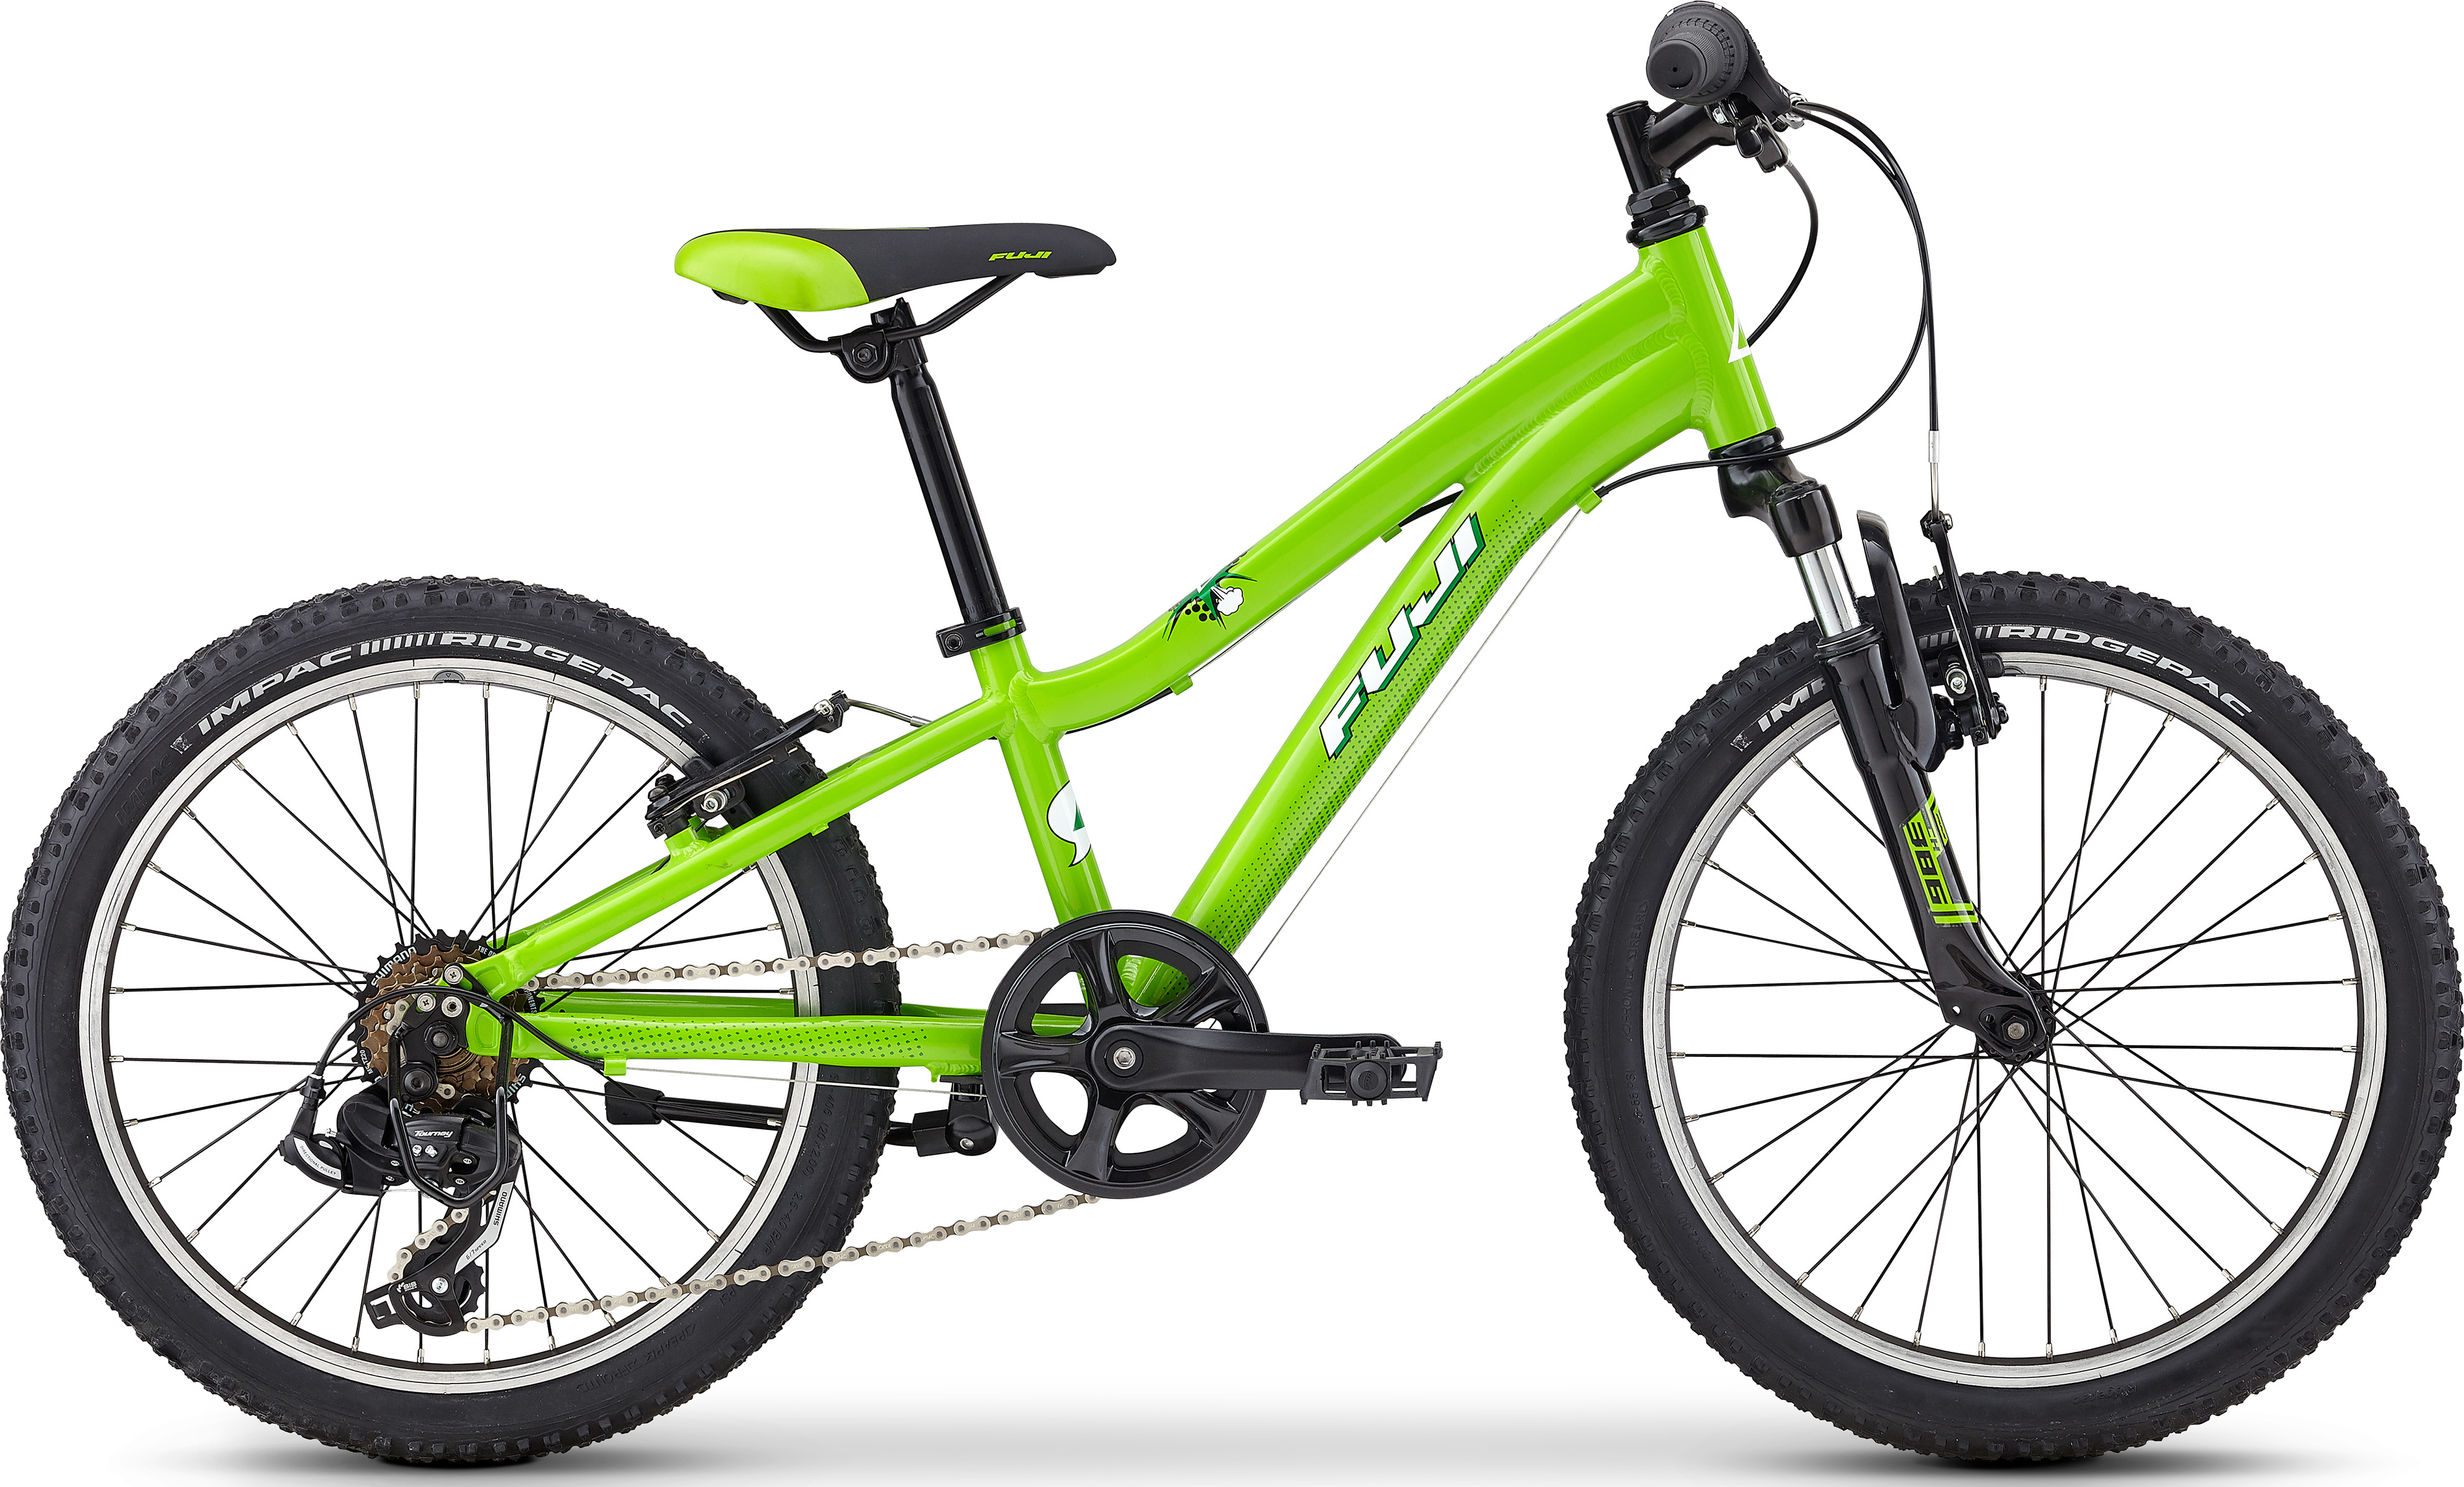 Fuji Dynamite 20 Kids Bike (2019) | City